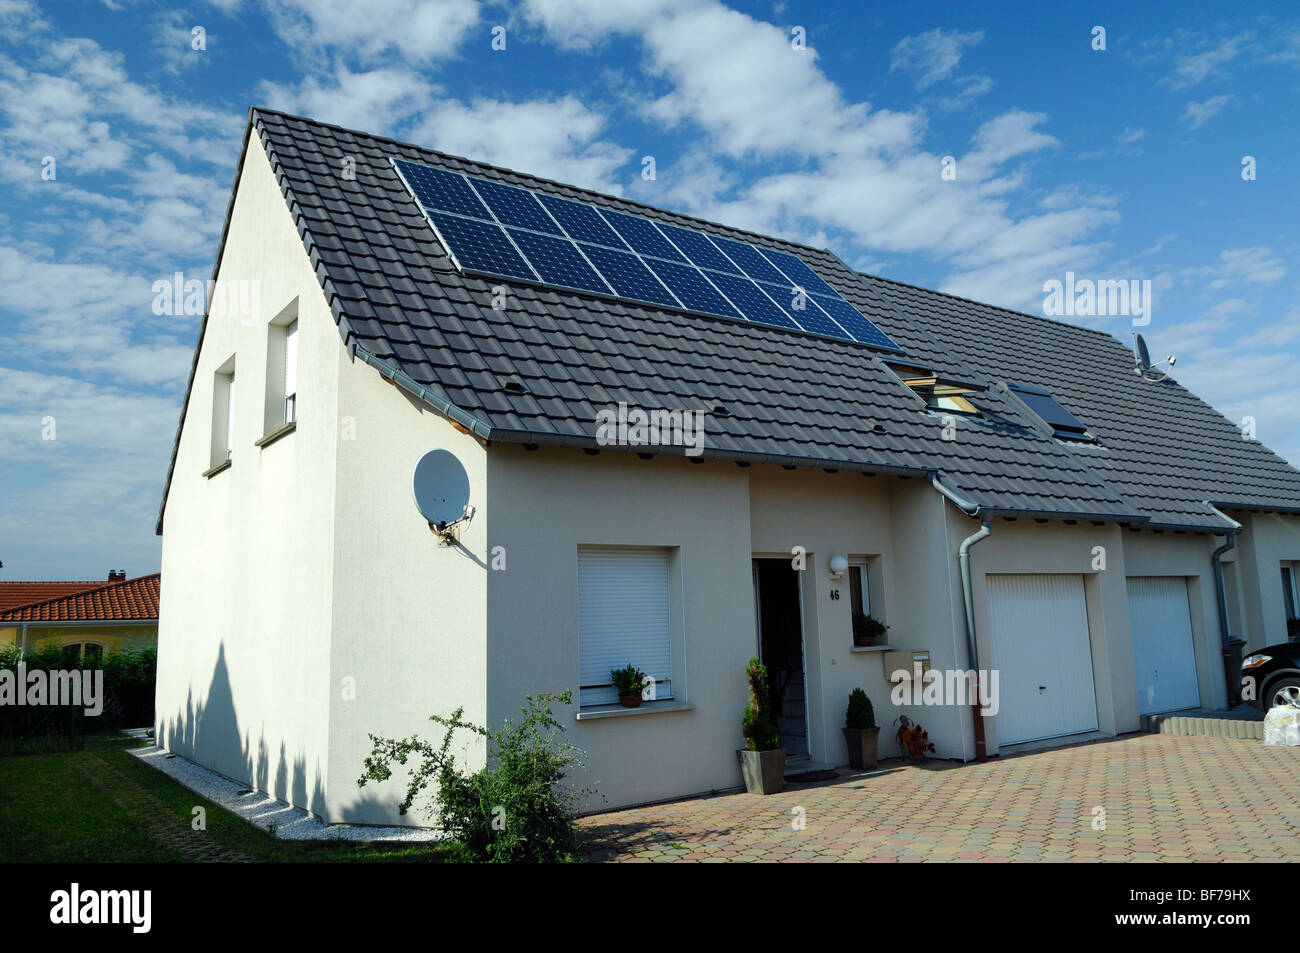 photovoltaic solar power energy panels on the roof of a private house - Stock Image